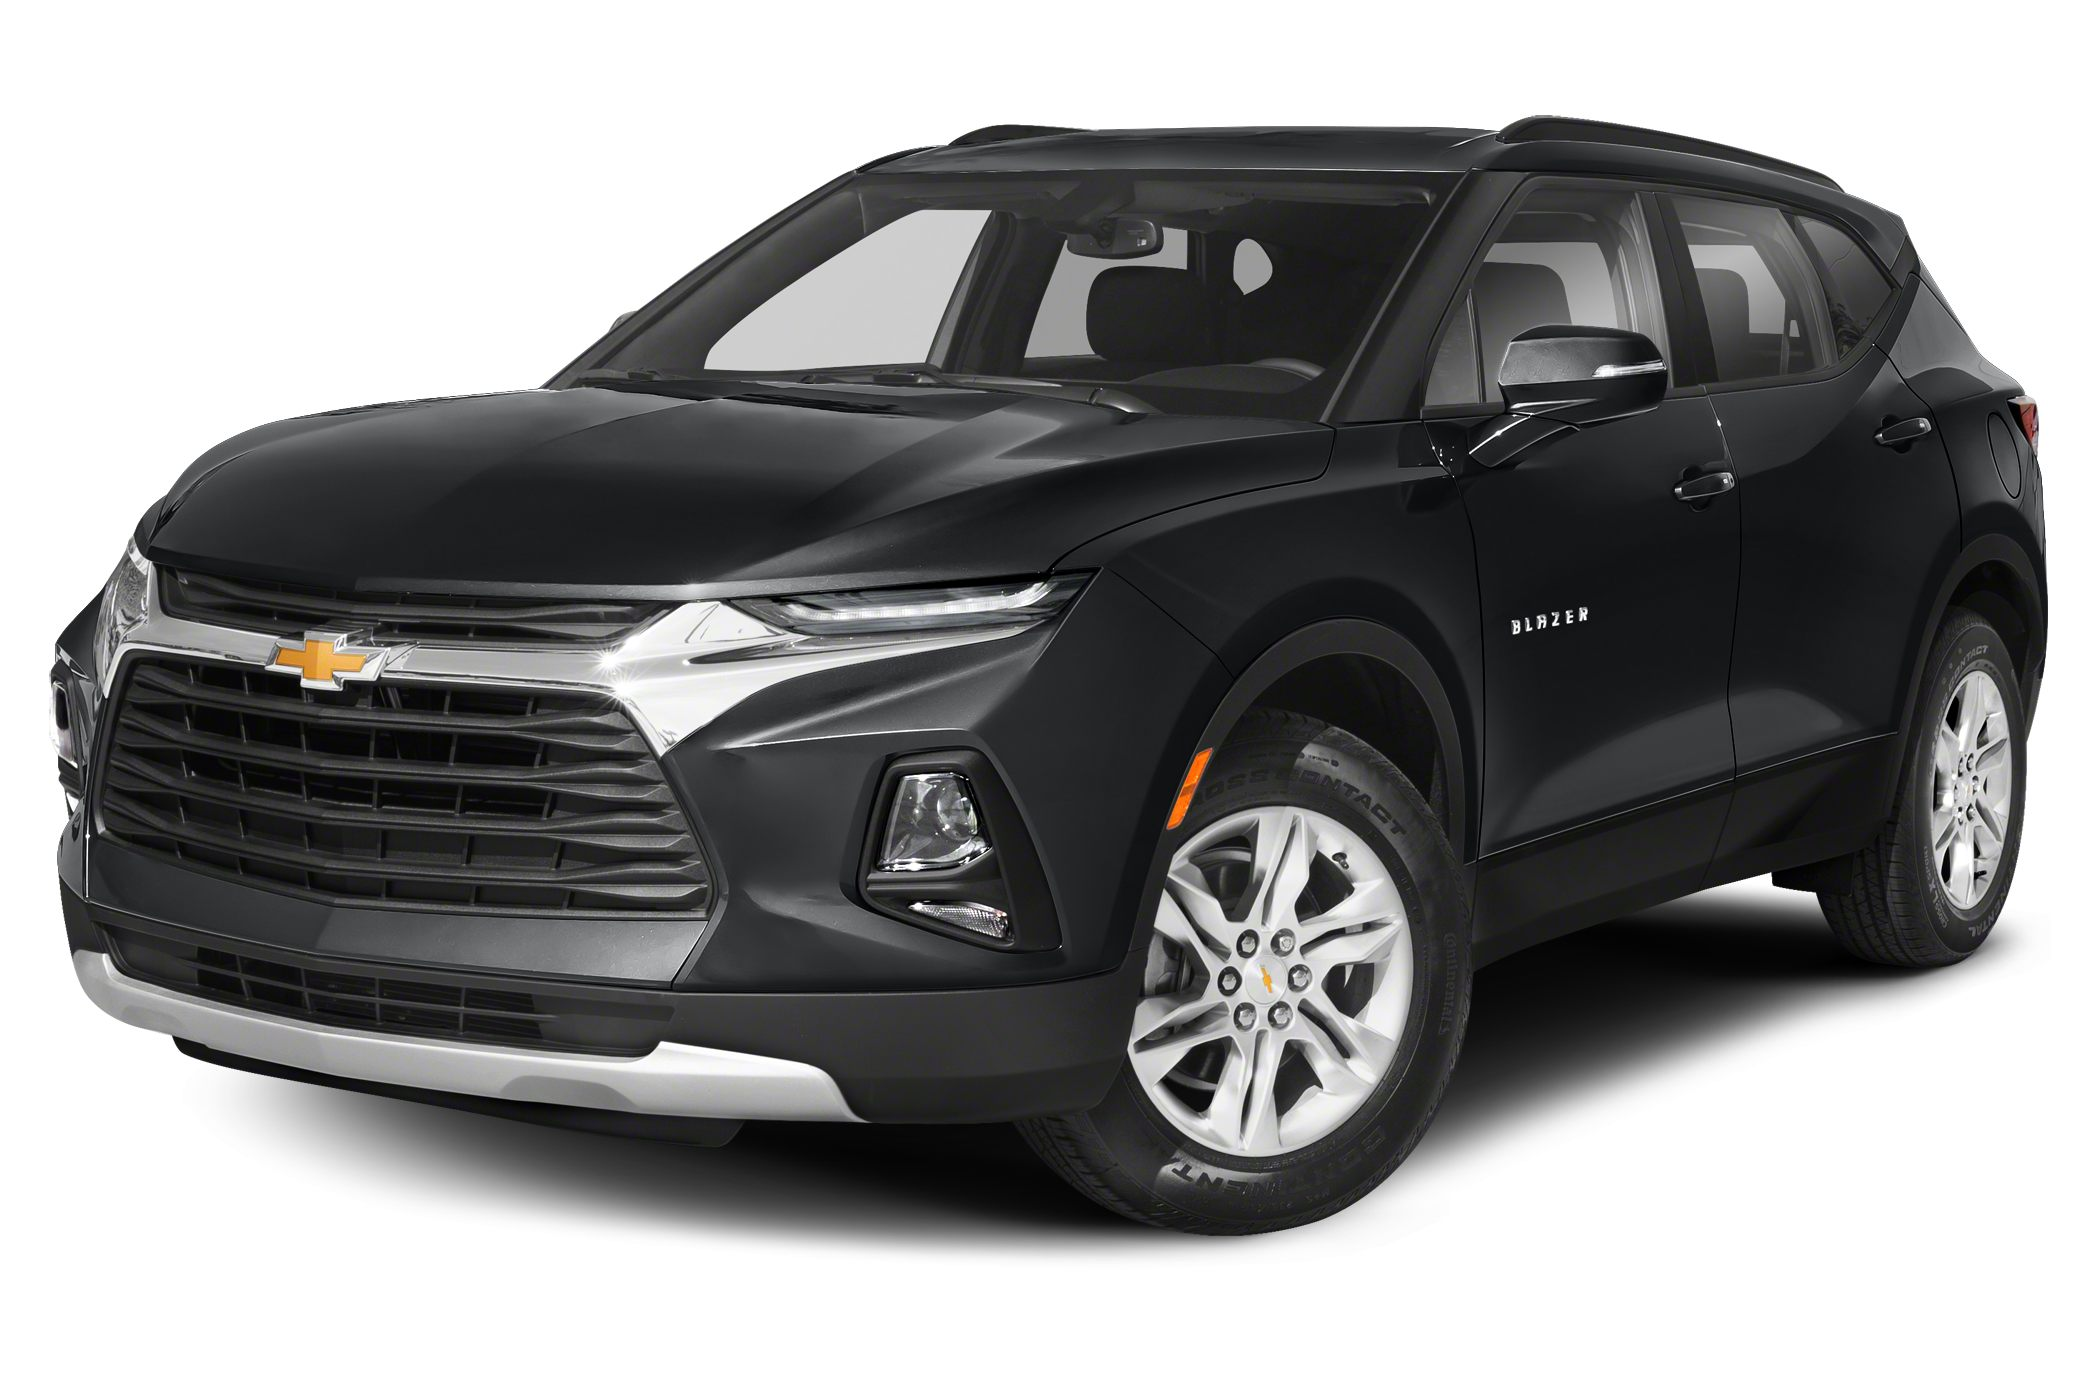 2020 Chevrolet Blazer Specs And Prices